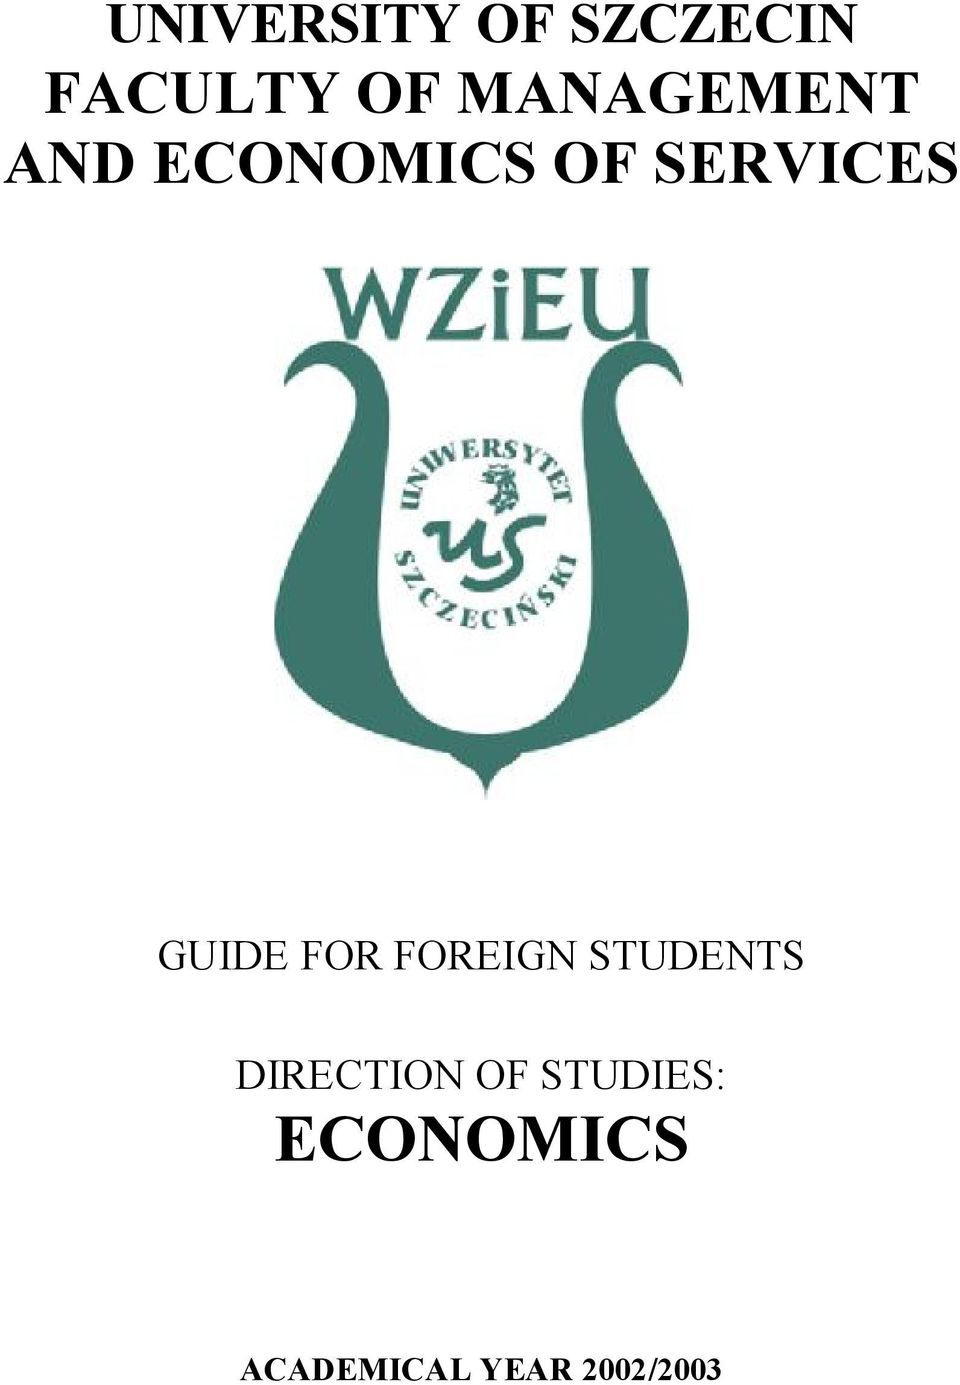 GUIDE FOR FOREIGN STUDENTS DIRECTION